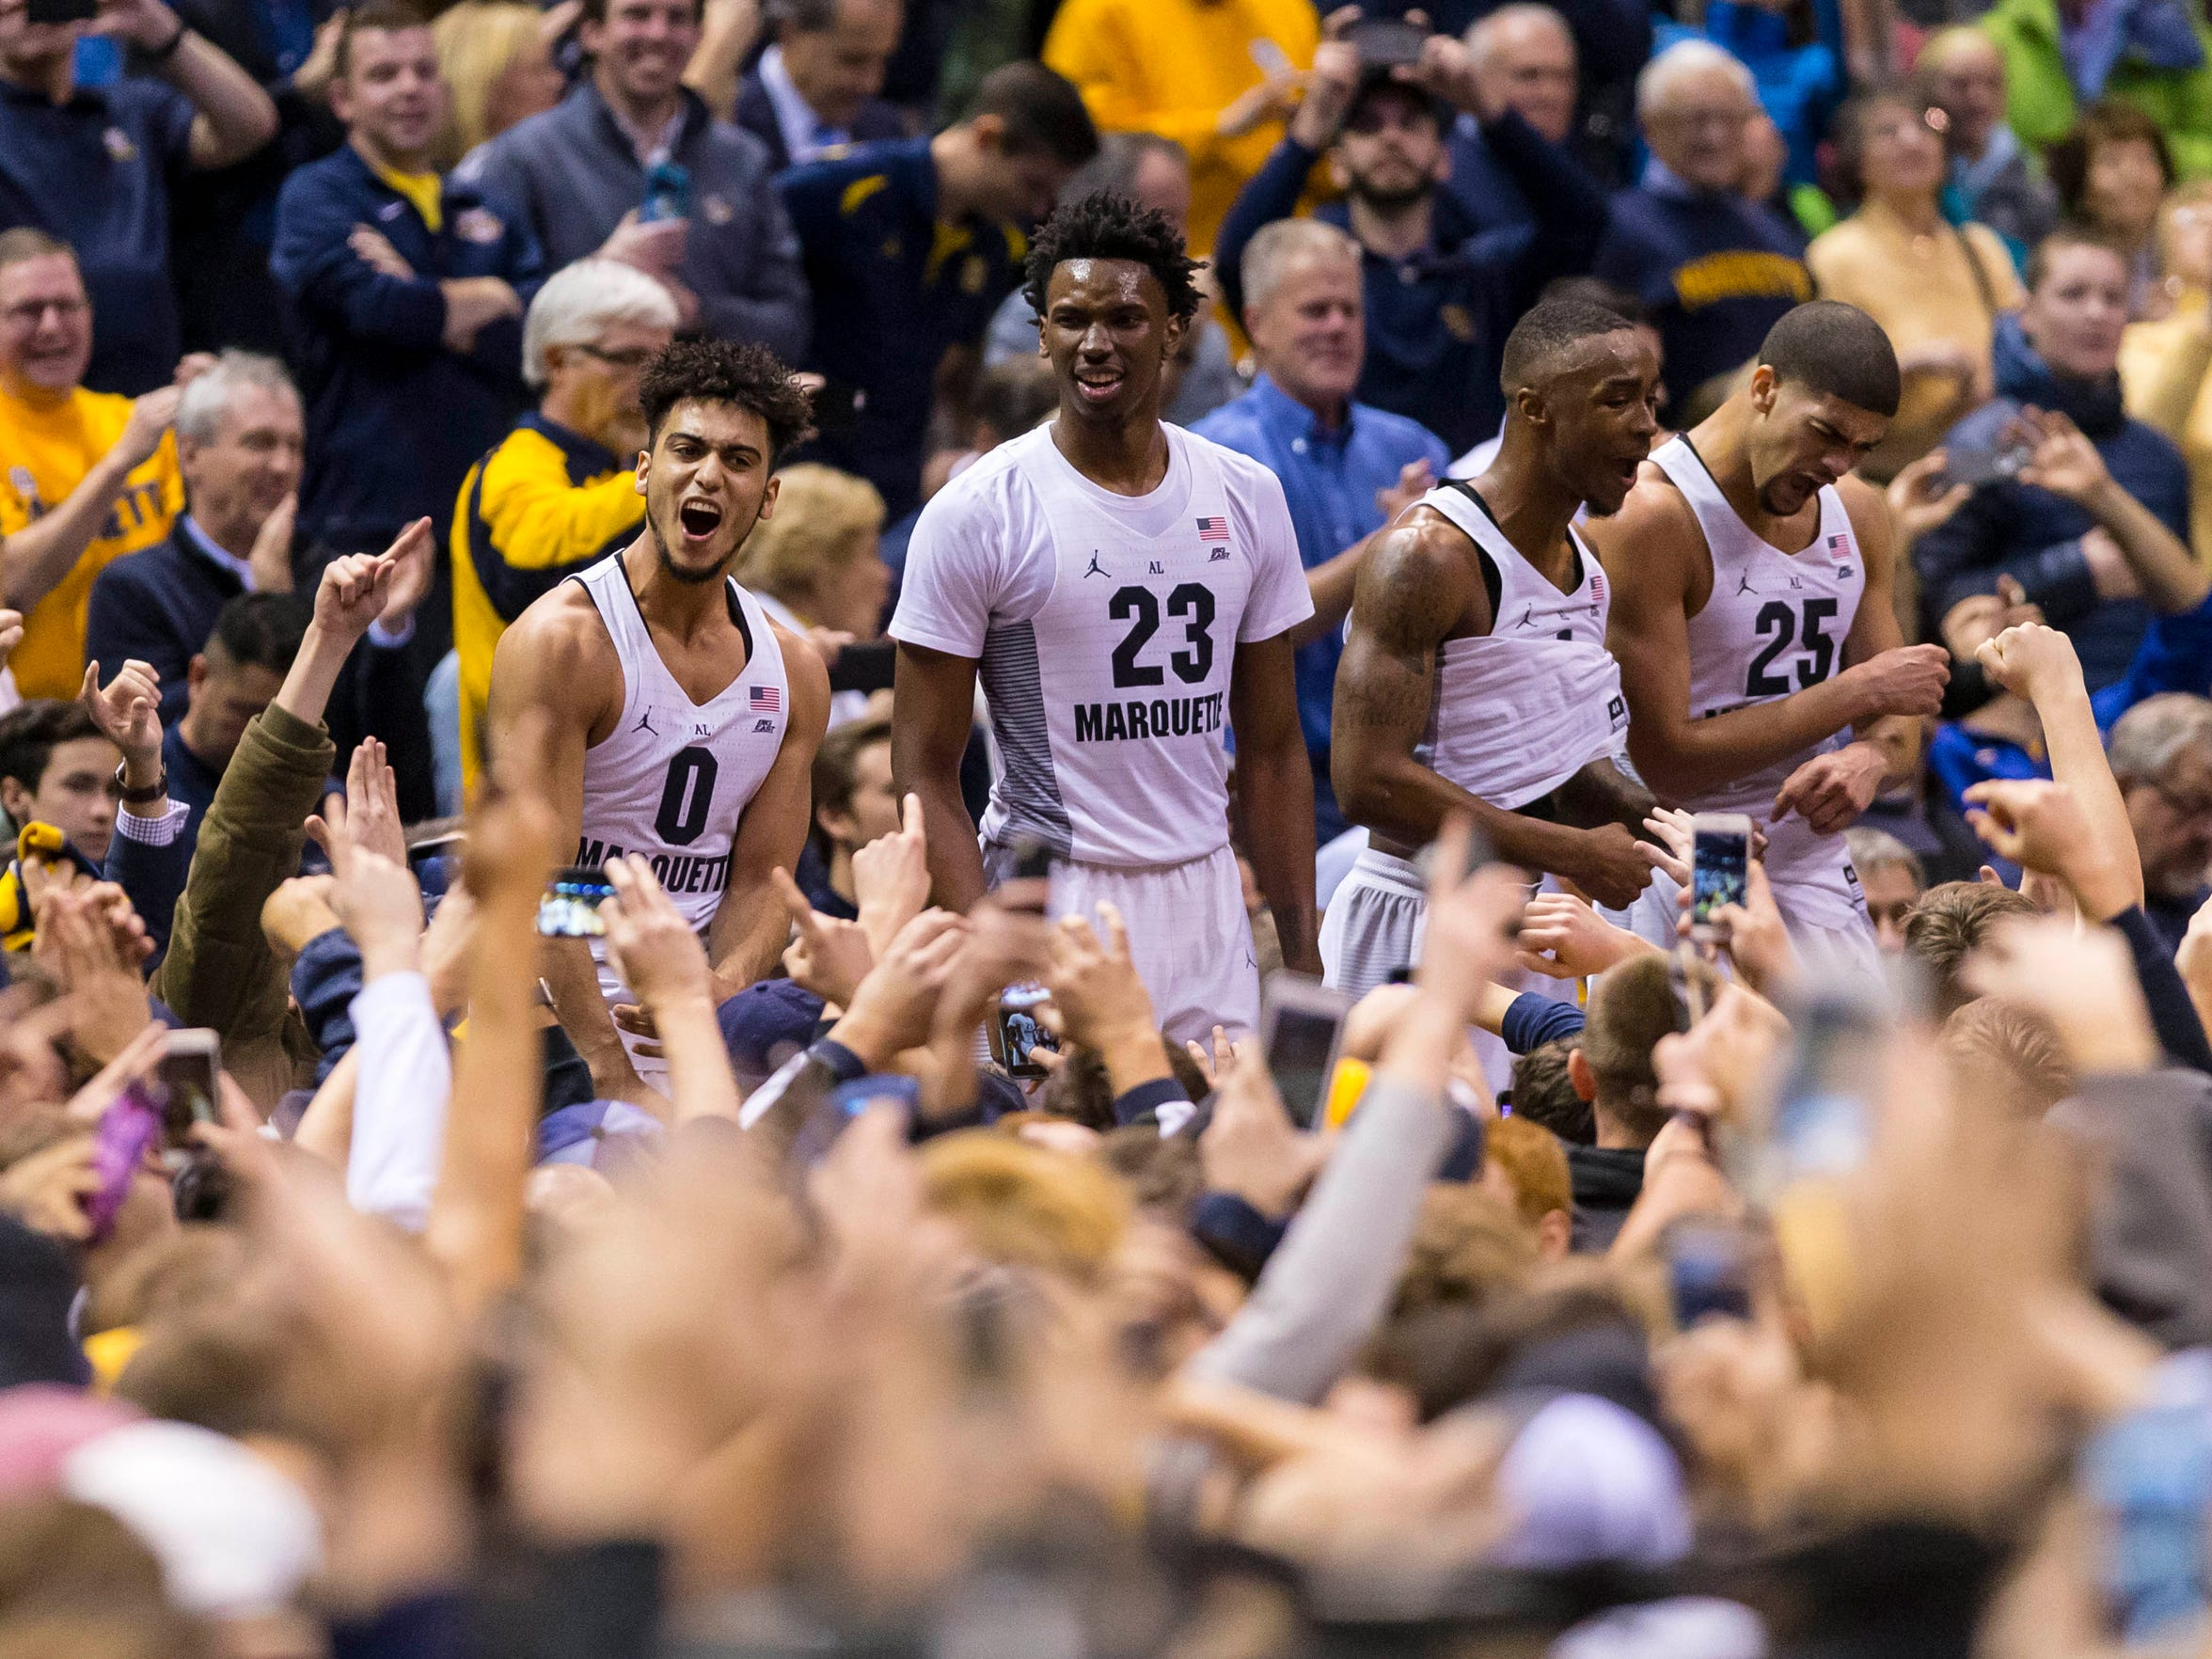 Marquette players celebrate with fans after defeating